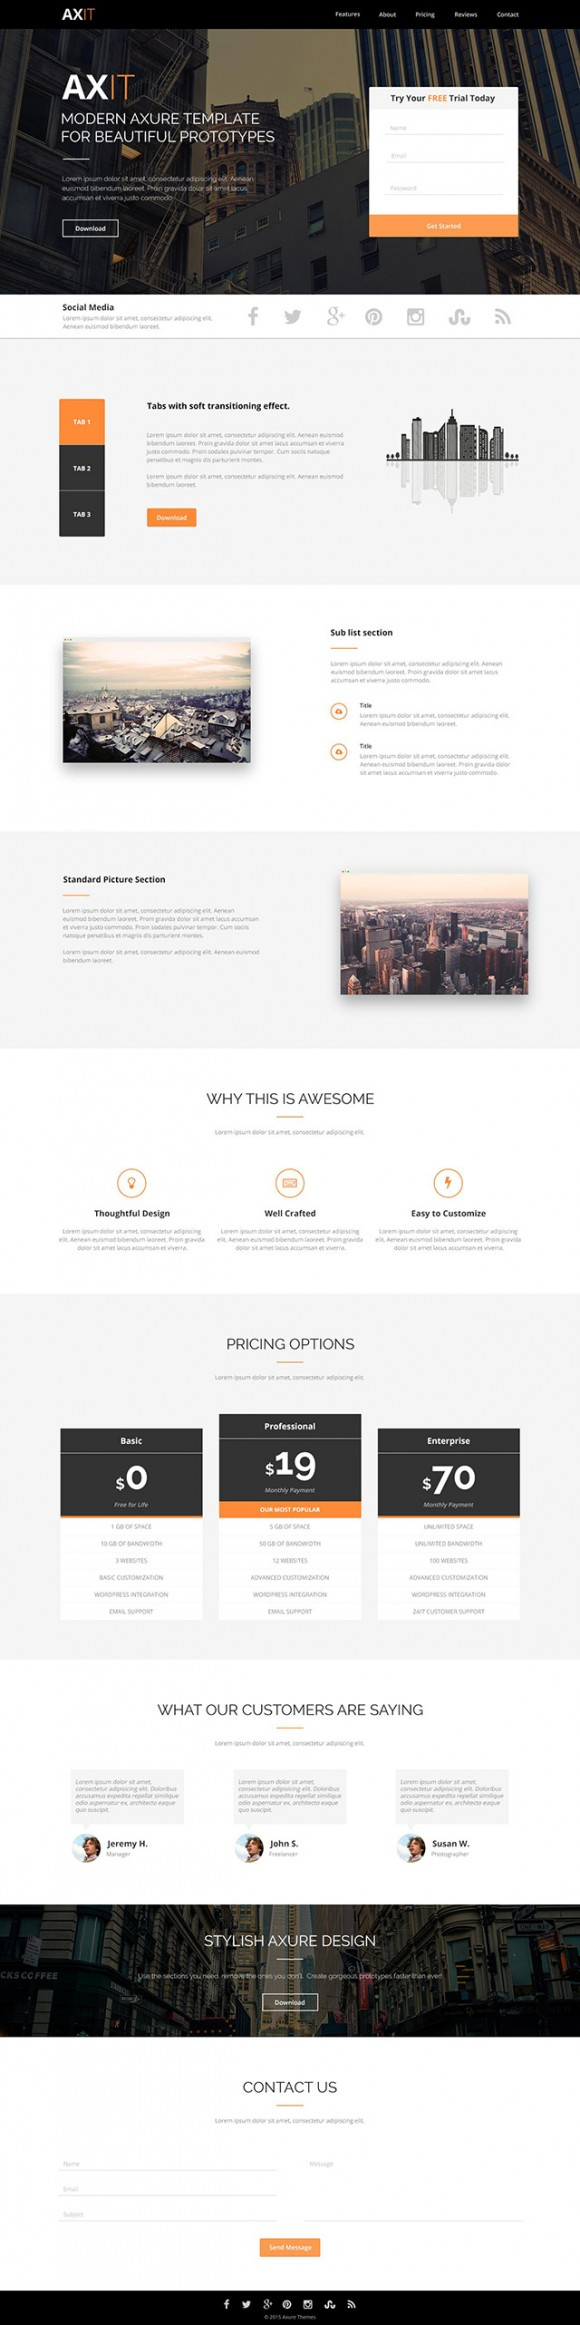 Axit - Free PSD Landing page - Detailed image